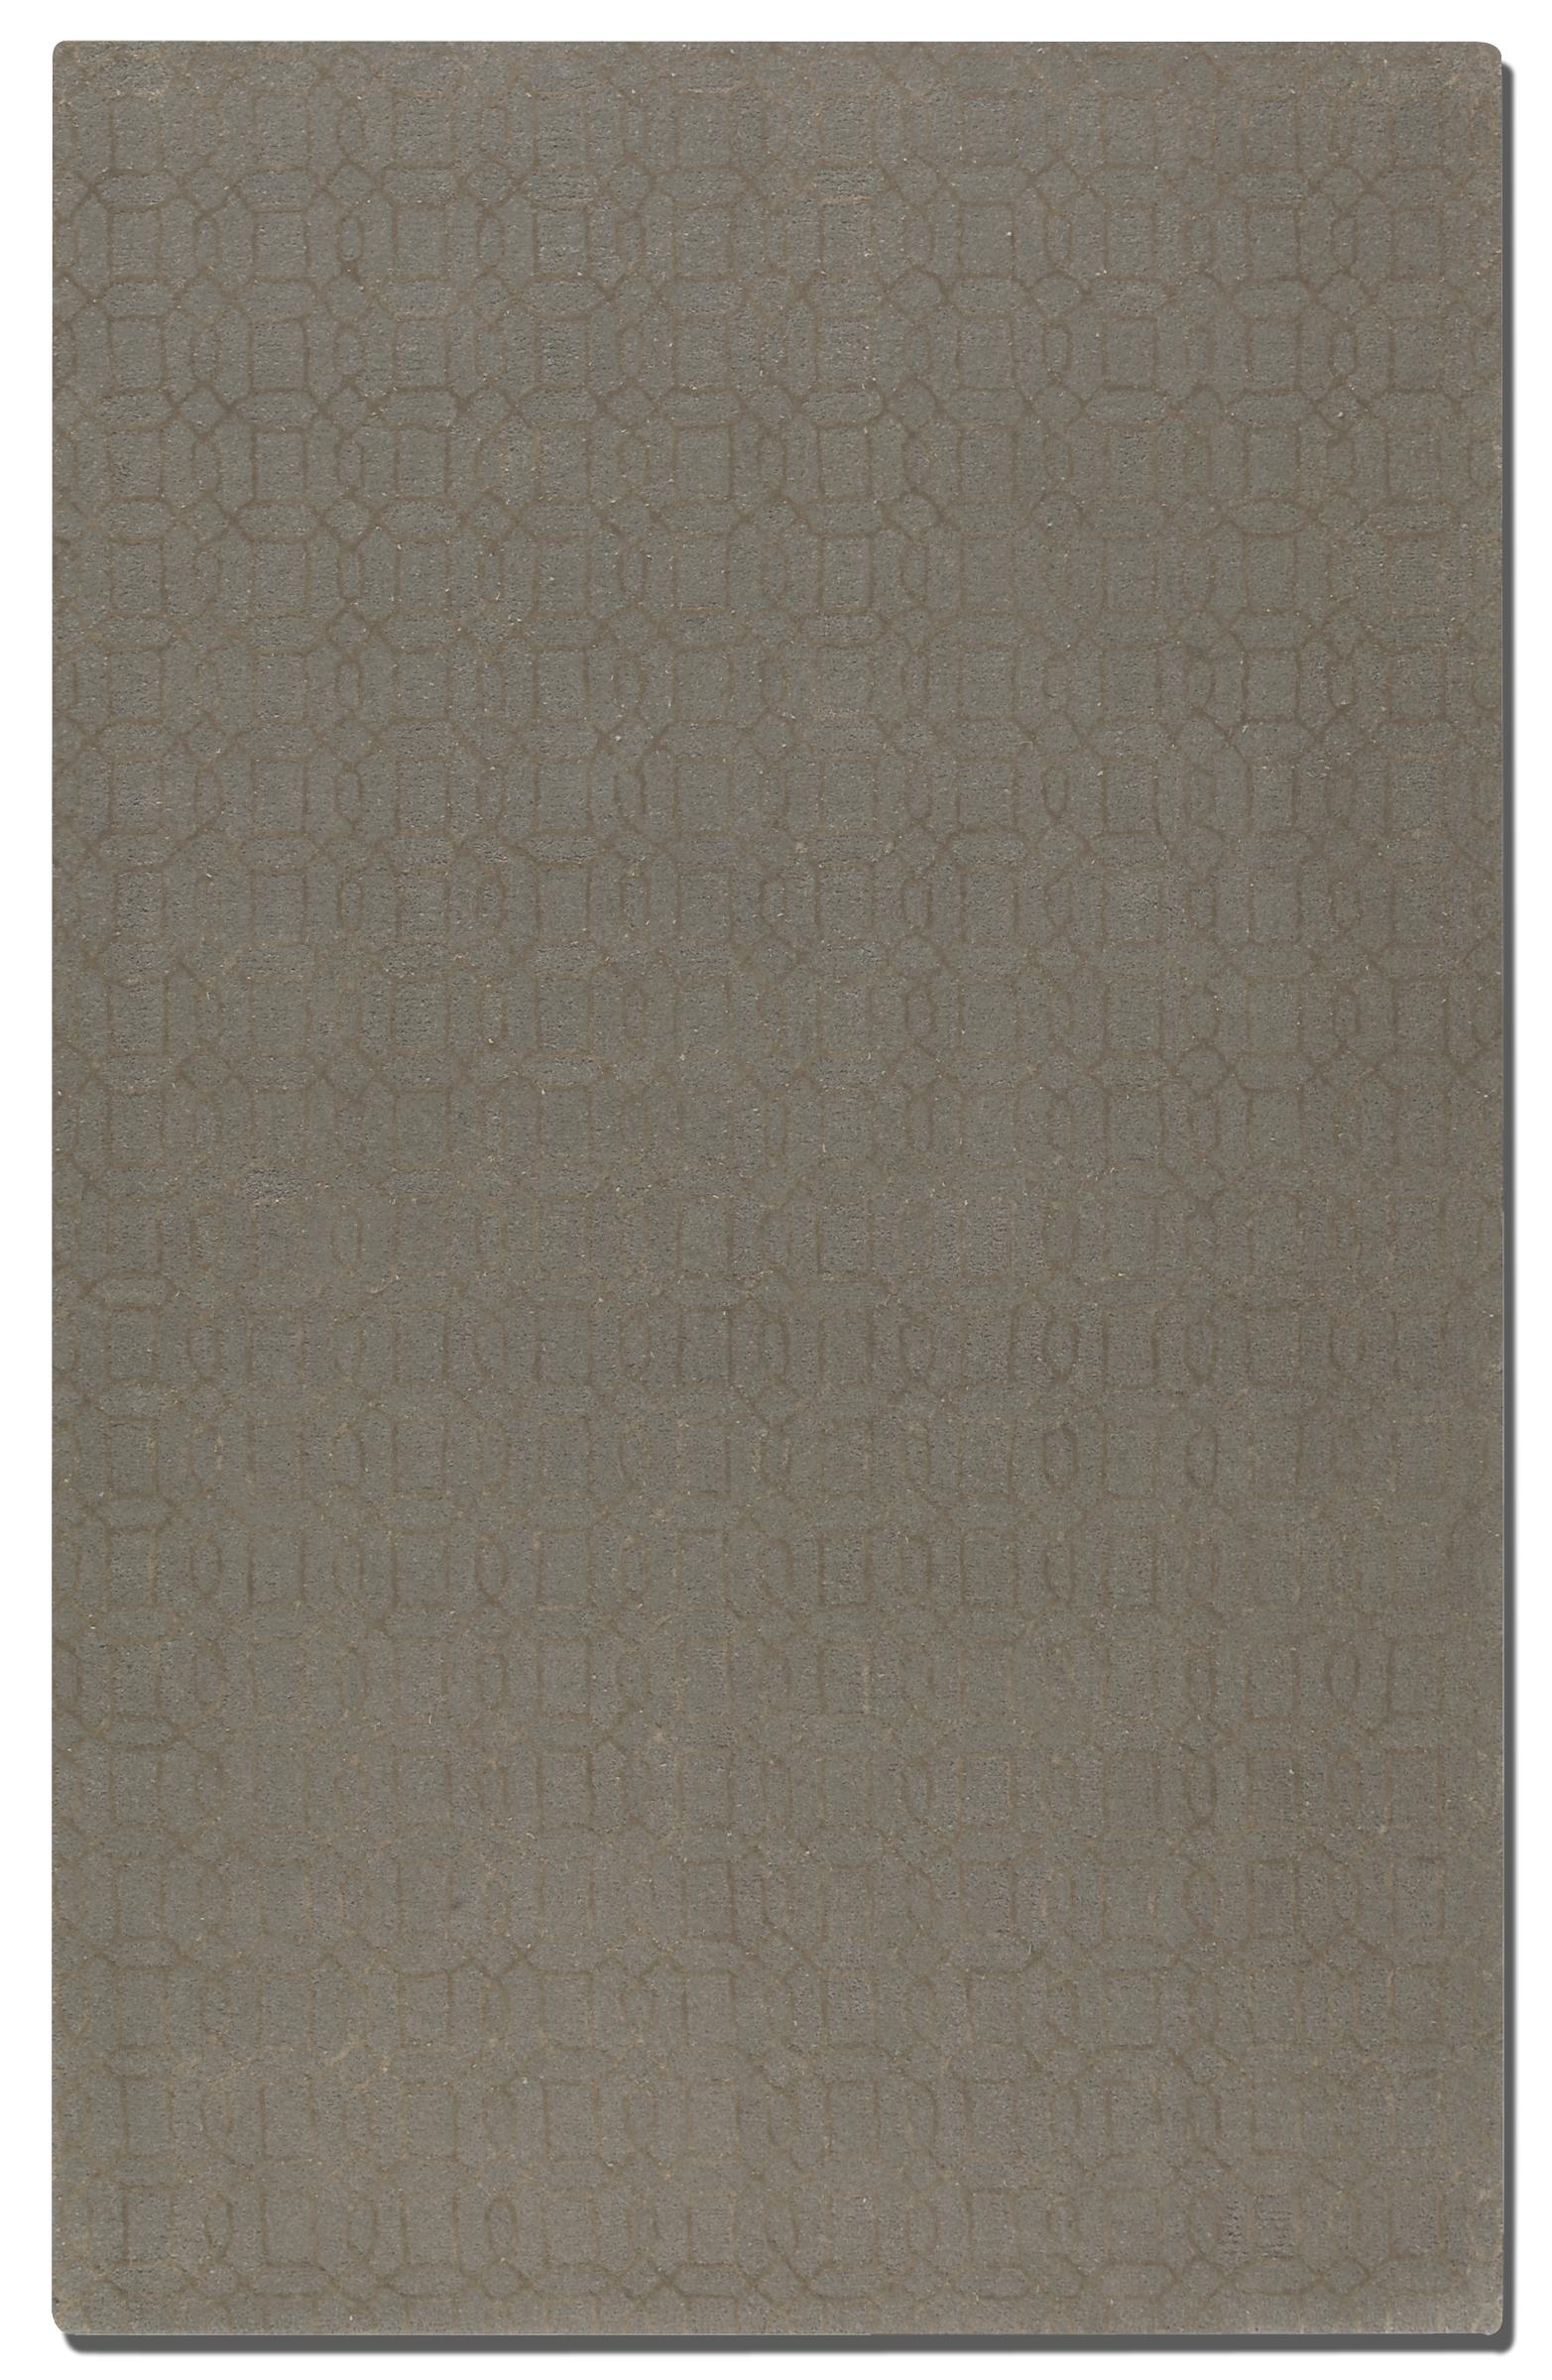 Uttermost Rugs Cambridge 5 X 8  - Item Number: 73027-5